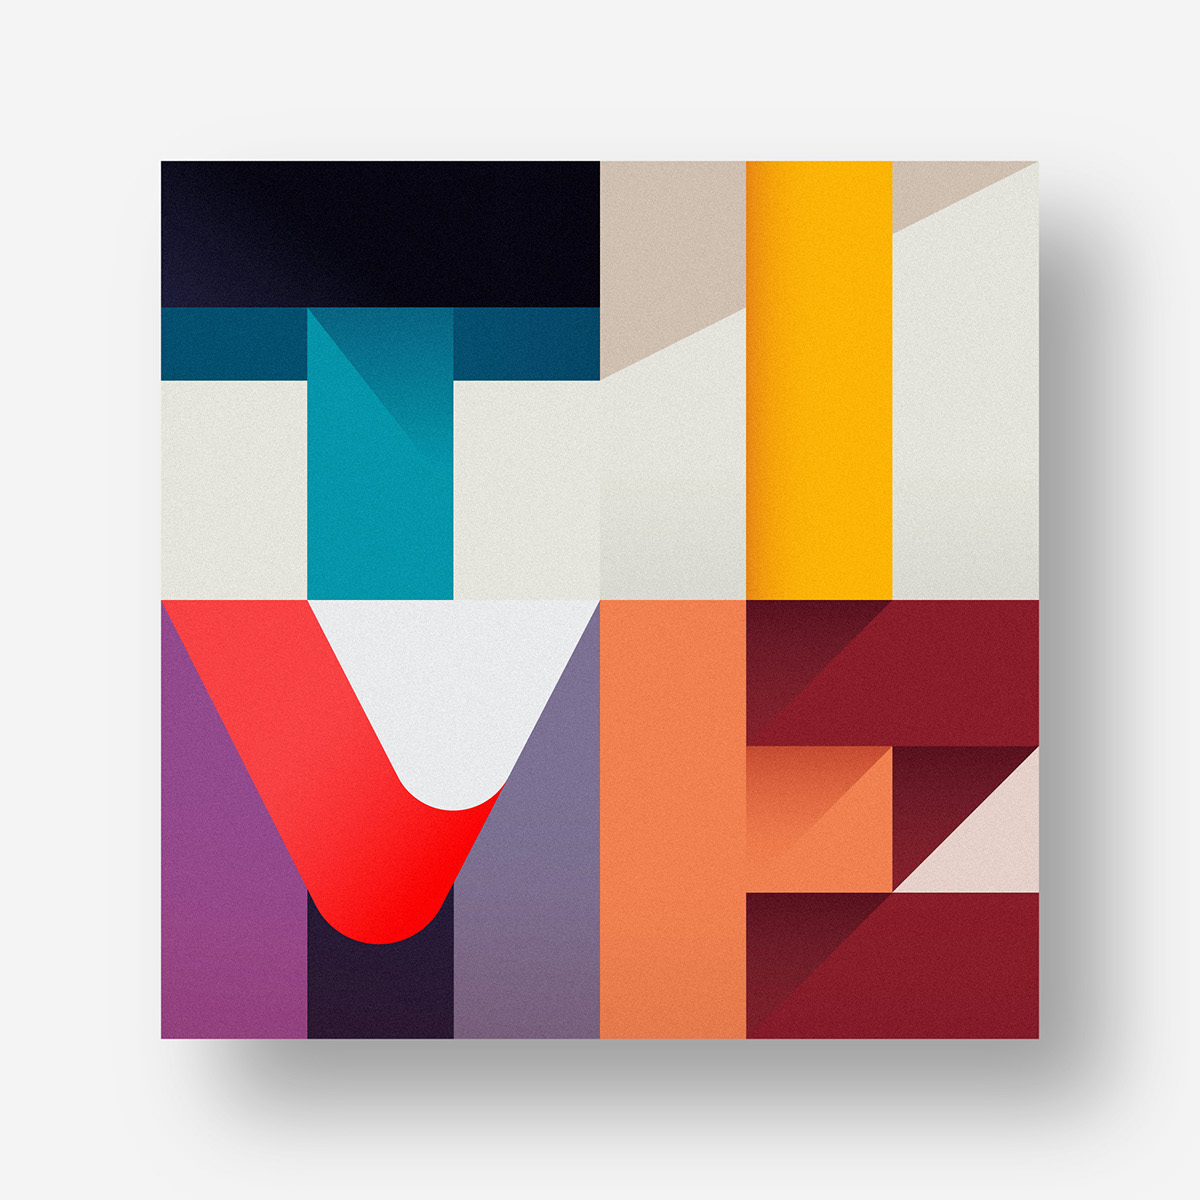 magazine editorial shapes geometric lettering flat colors type font Shadows solid minimal